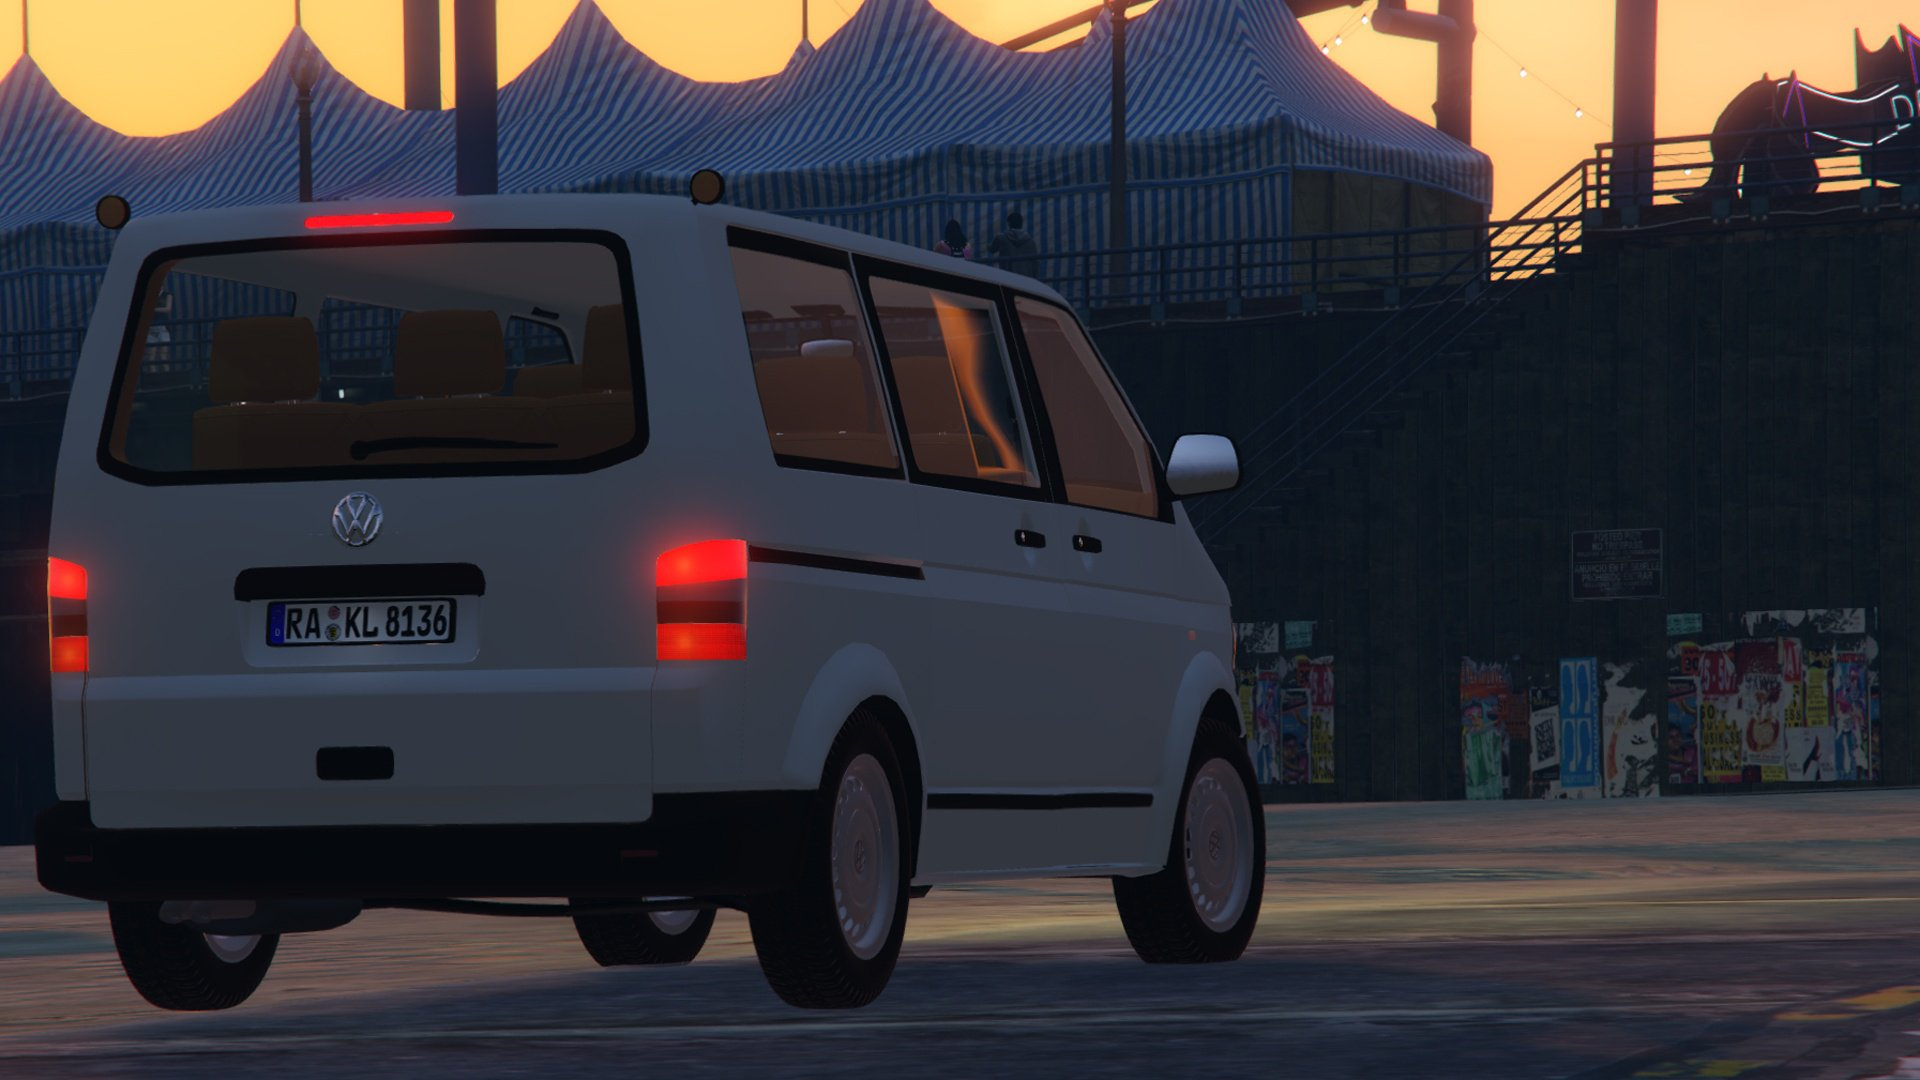 volkswagen t5 2011 facelift vehicules pour gta v sur gta modding. Black Bedroom Furniture Sets. Home Design Ideas